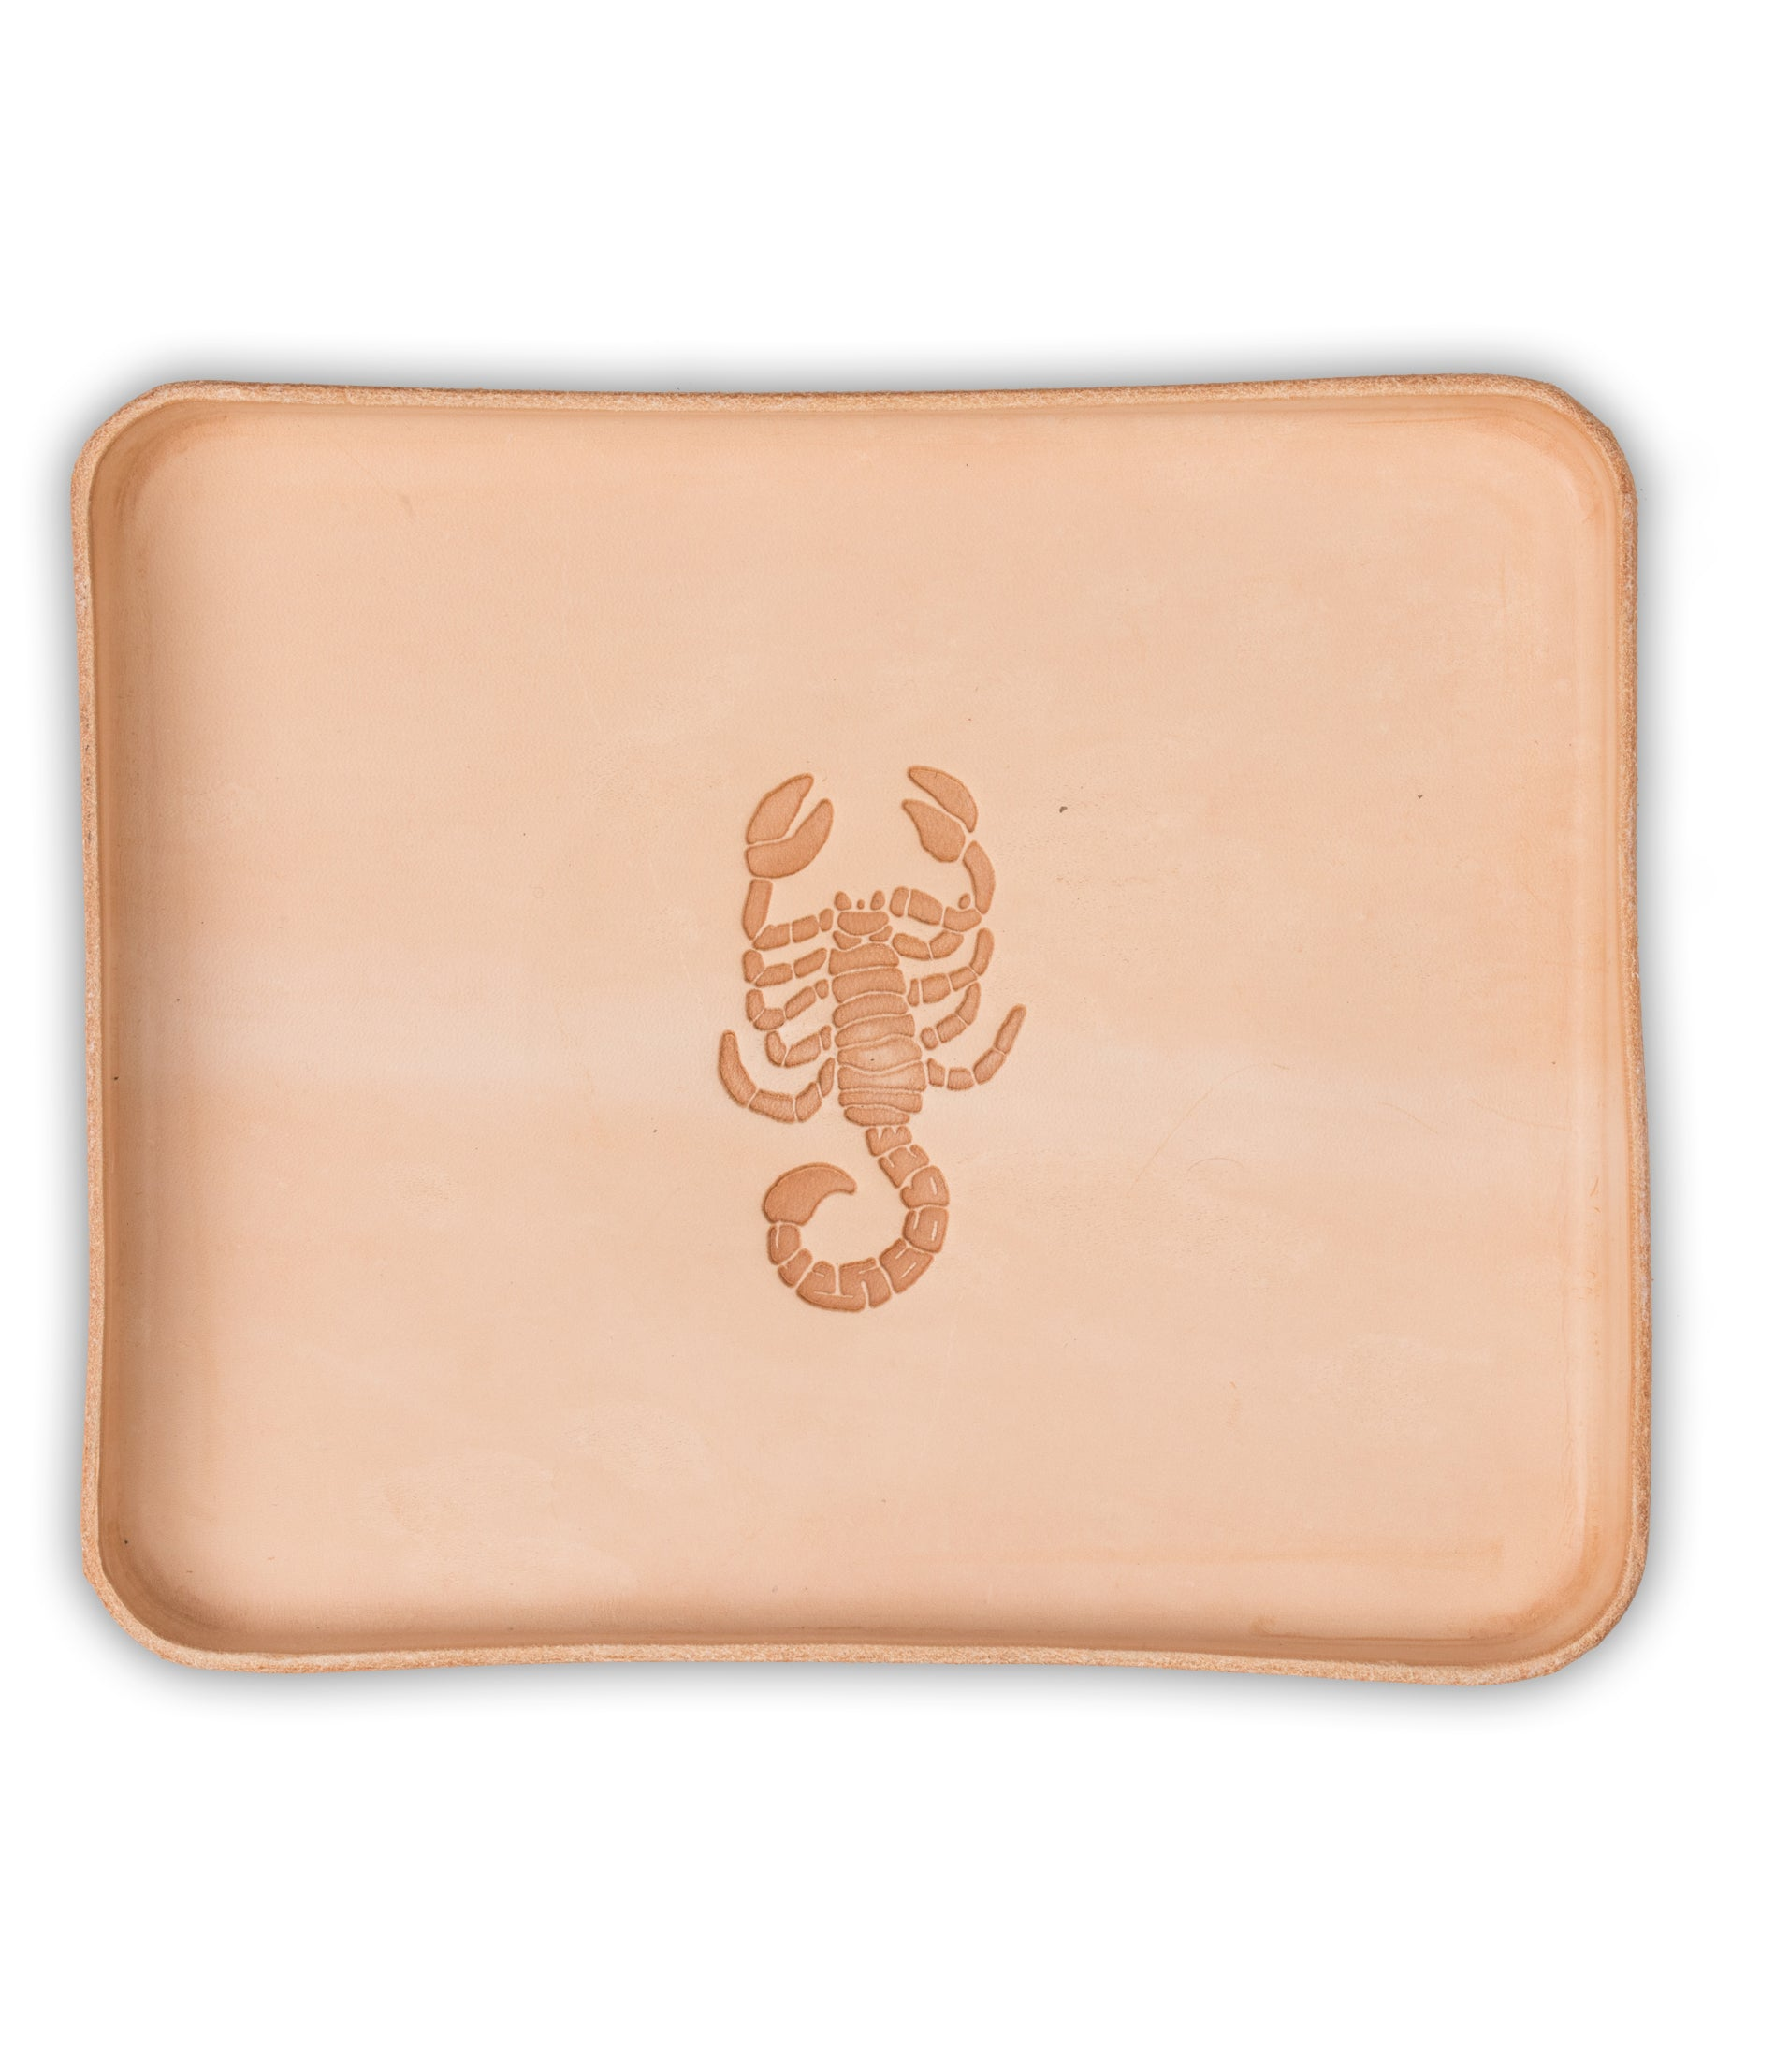 Scorpion Valet Tray :: PRESALE :: Delivery in January